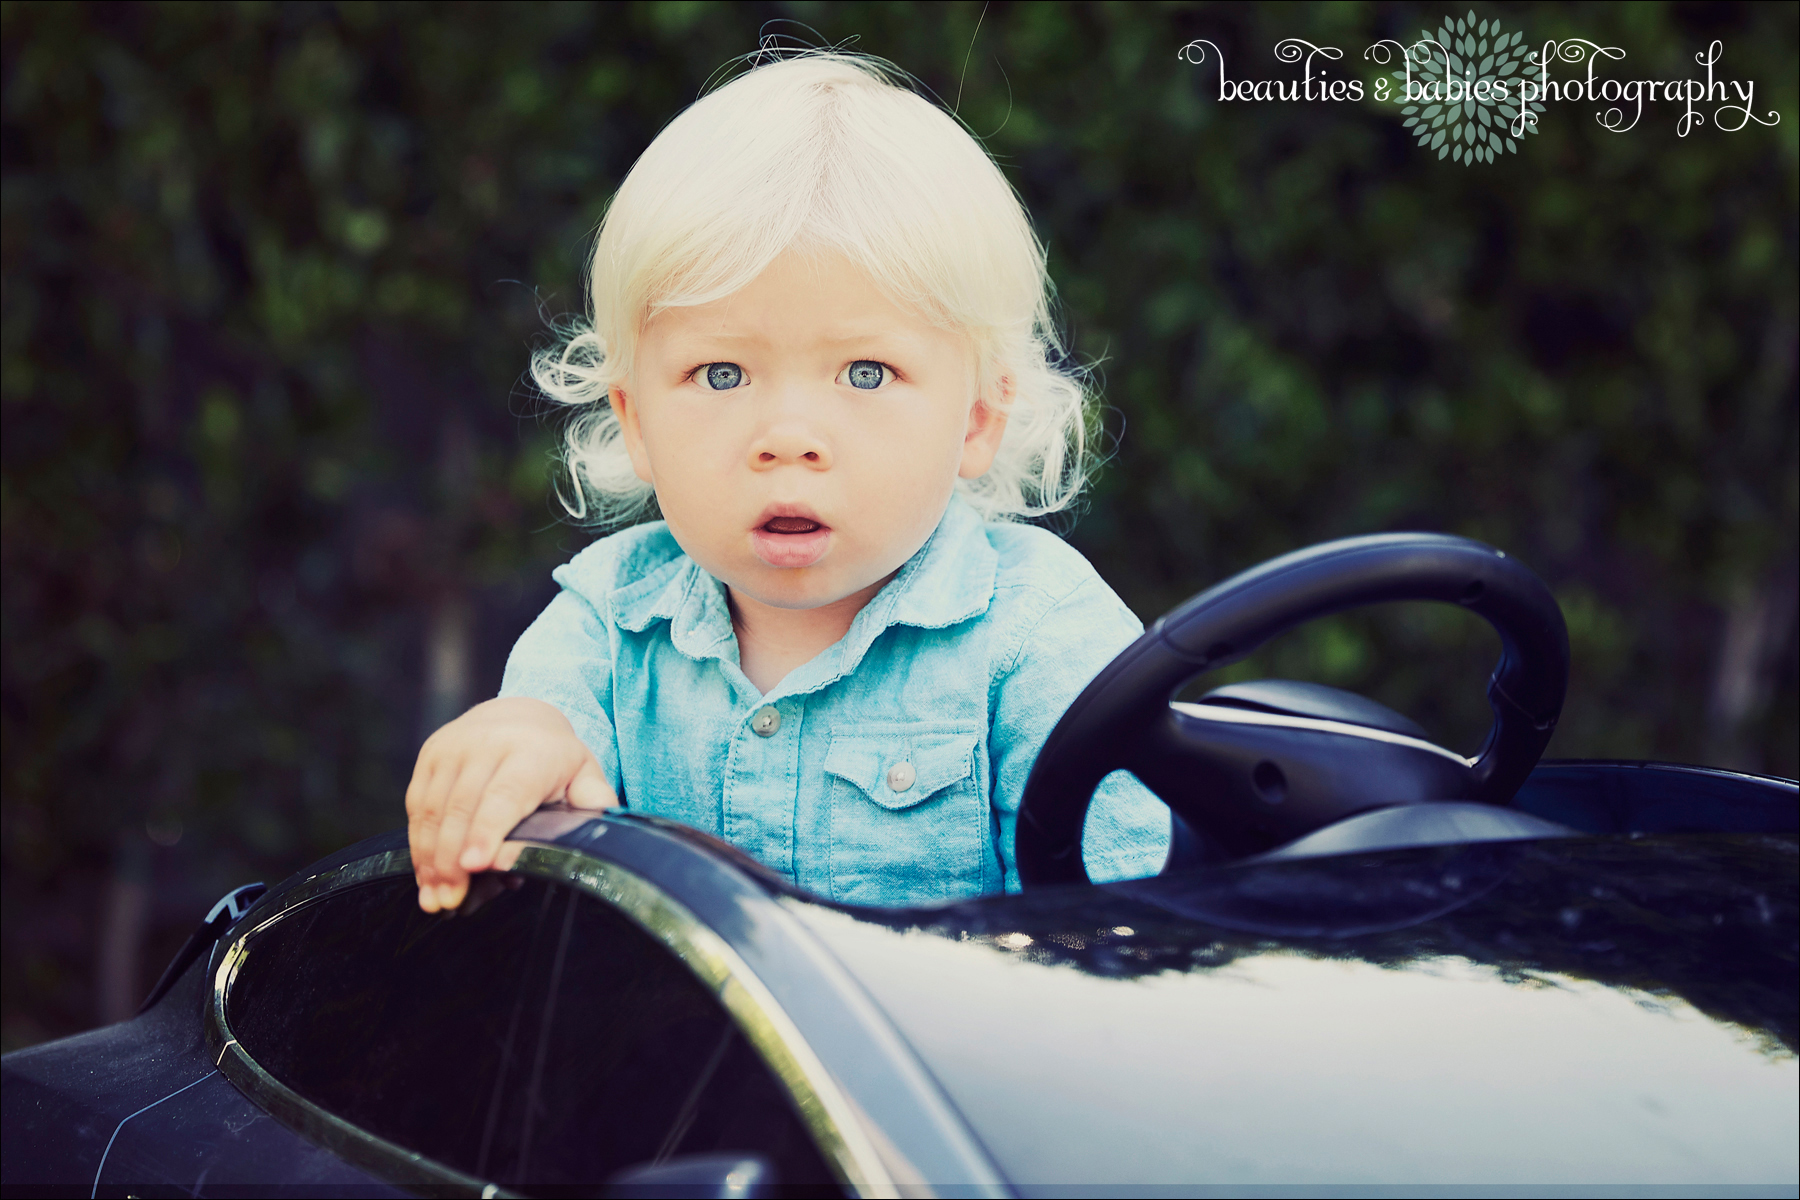 creative child photography mini car kids photography Los Angeles